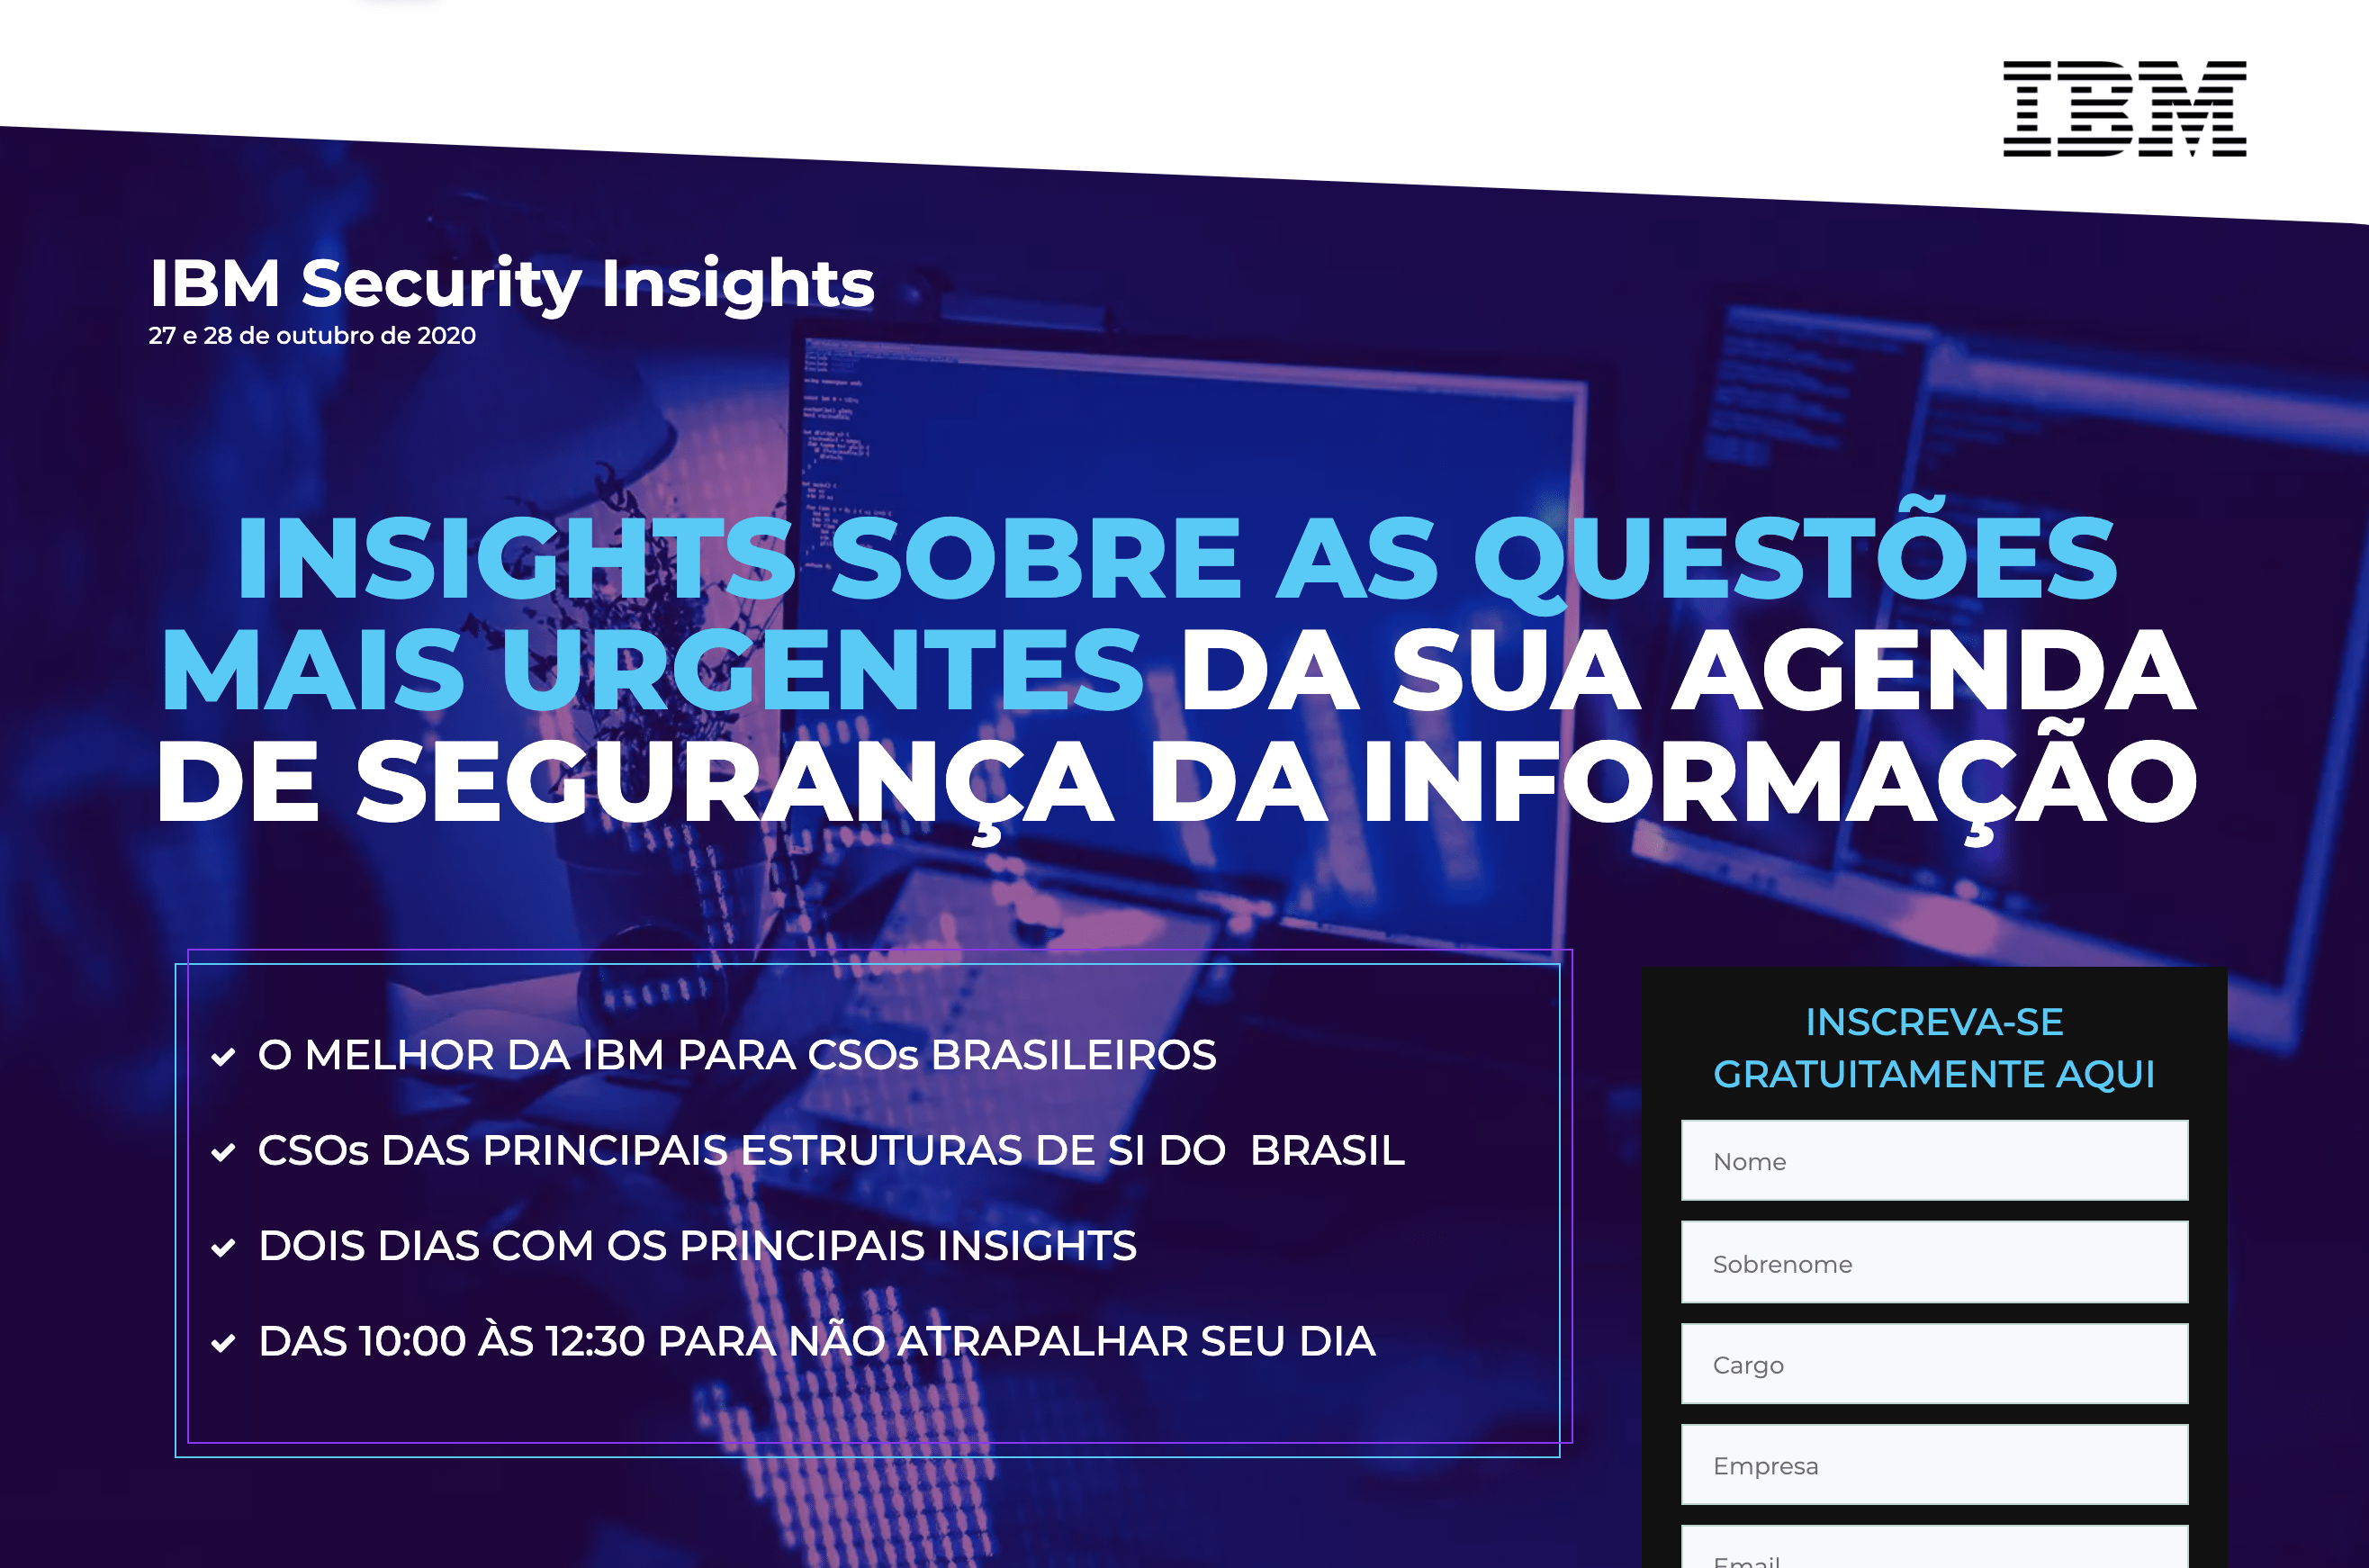 IBM Security Insights